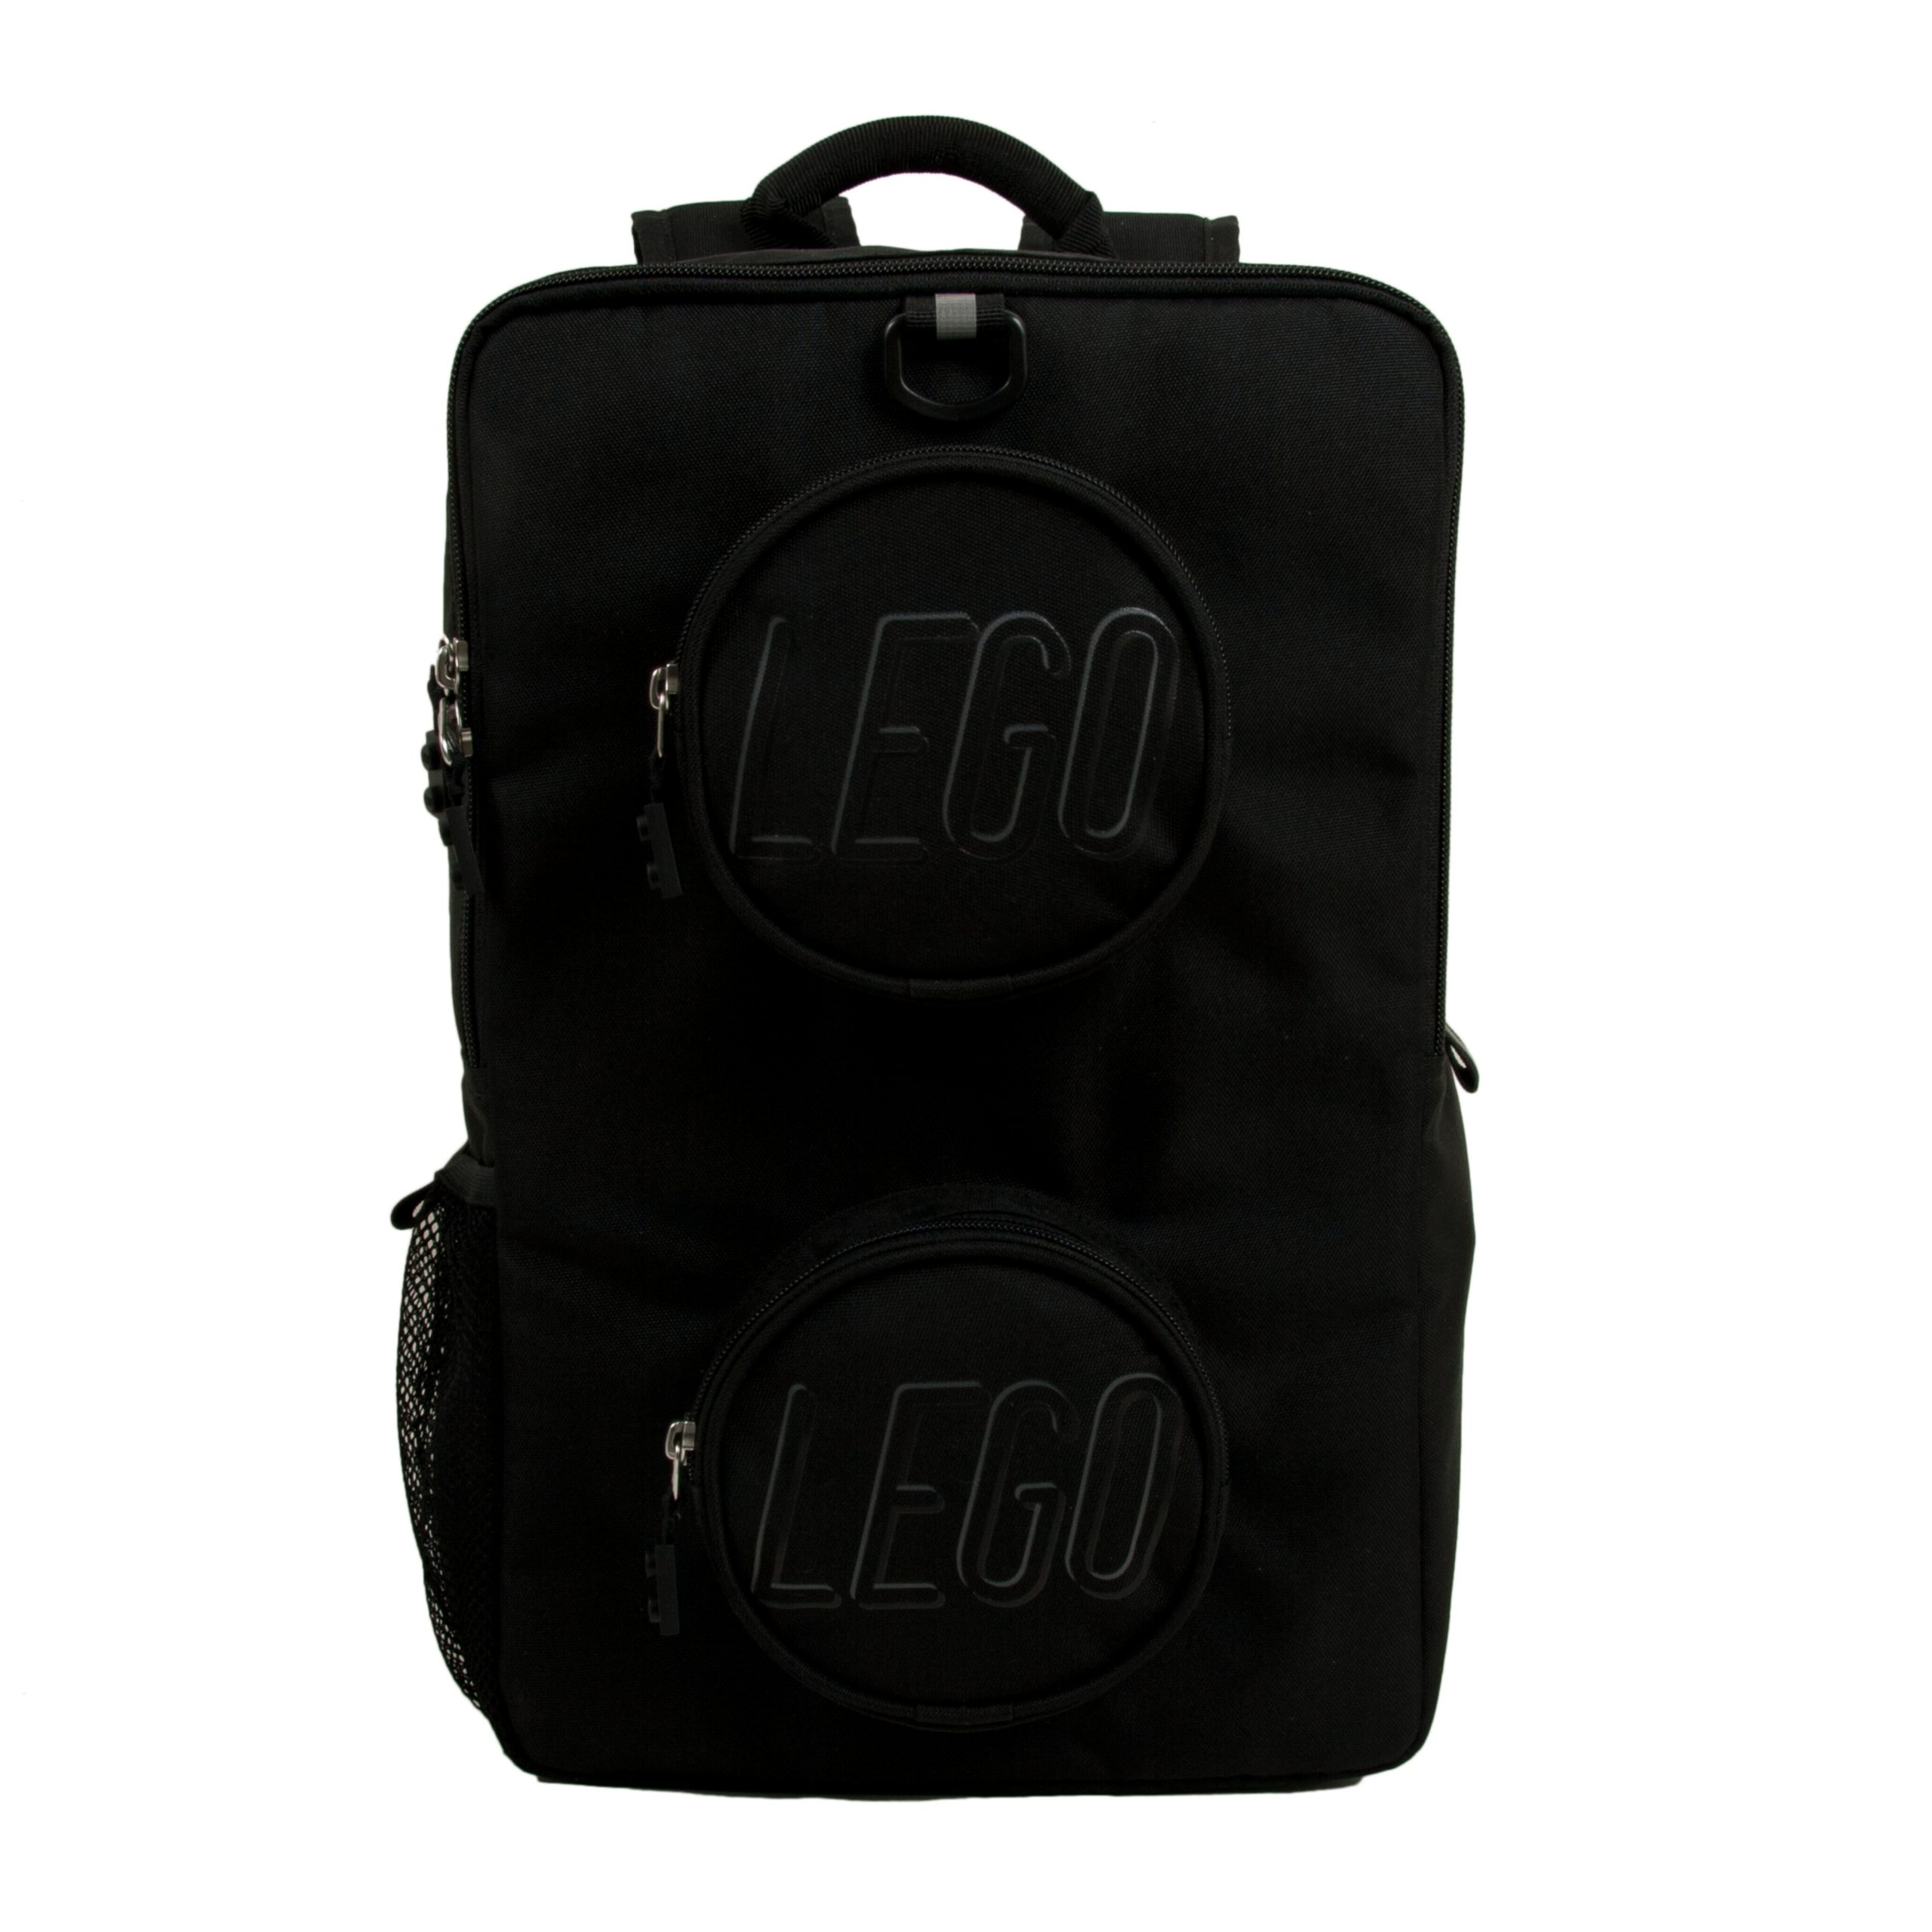 lego 5005537 brick backpack black scaled